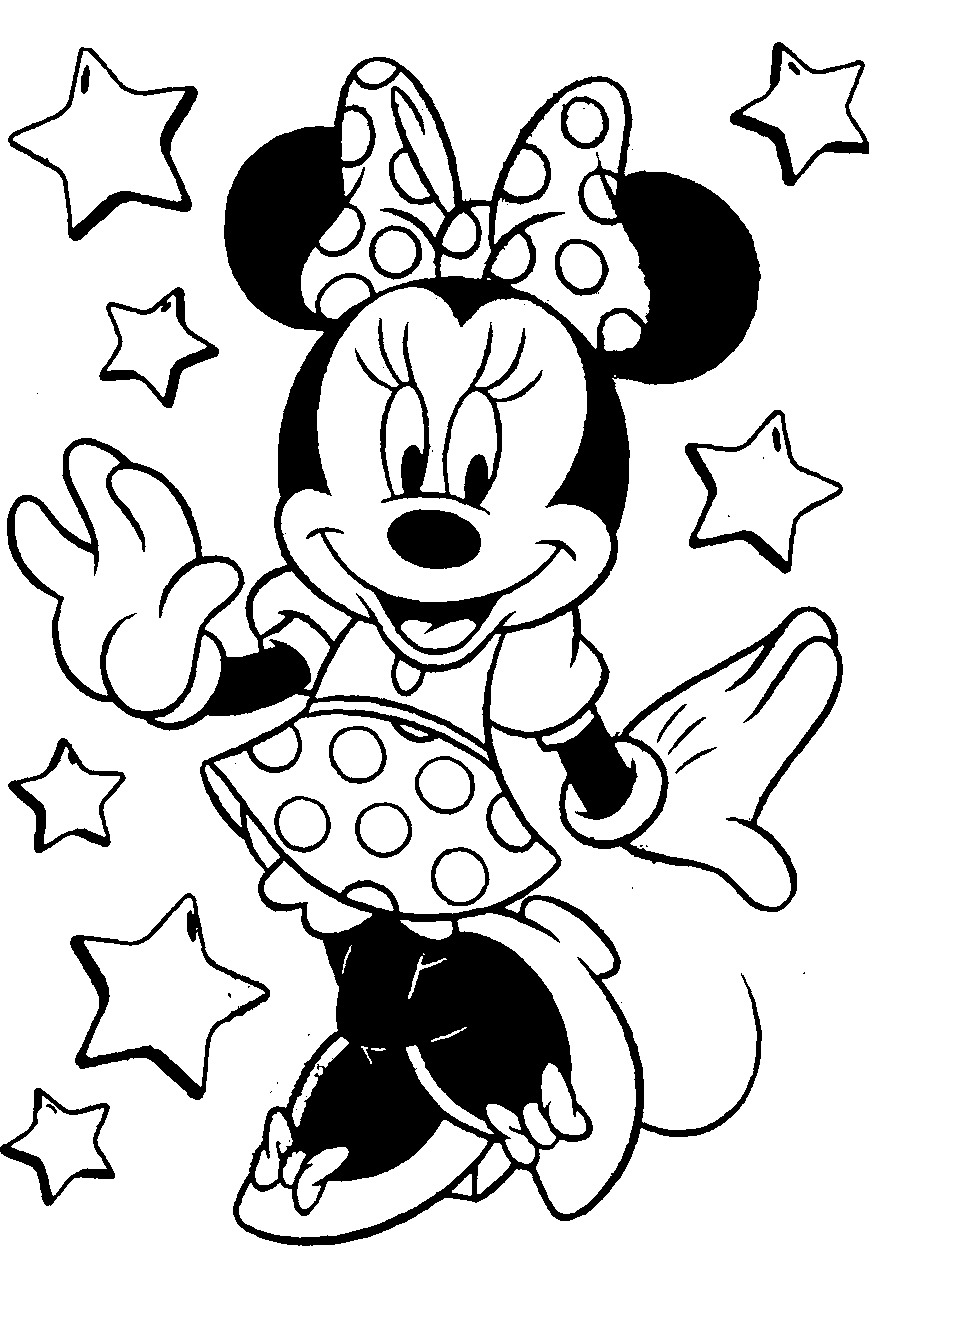 Mickey Mouse Coloring Pages For Toddlers At Getdrawings Com Free